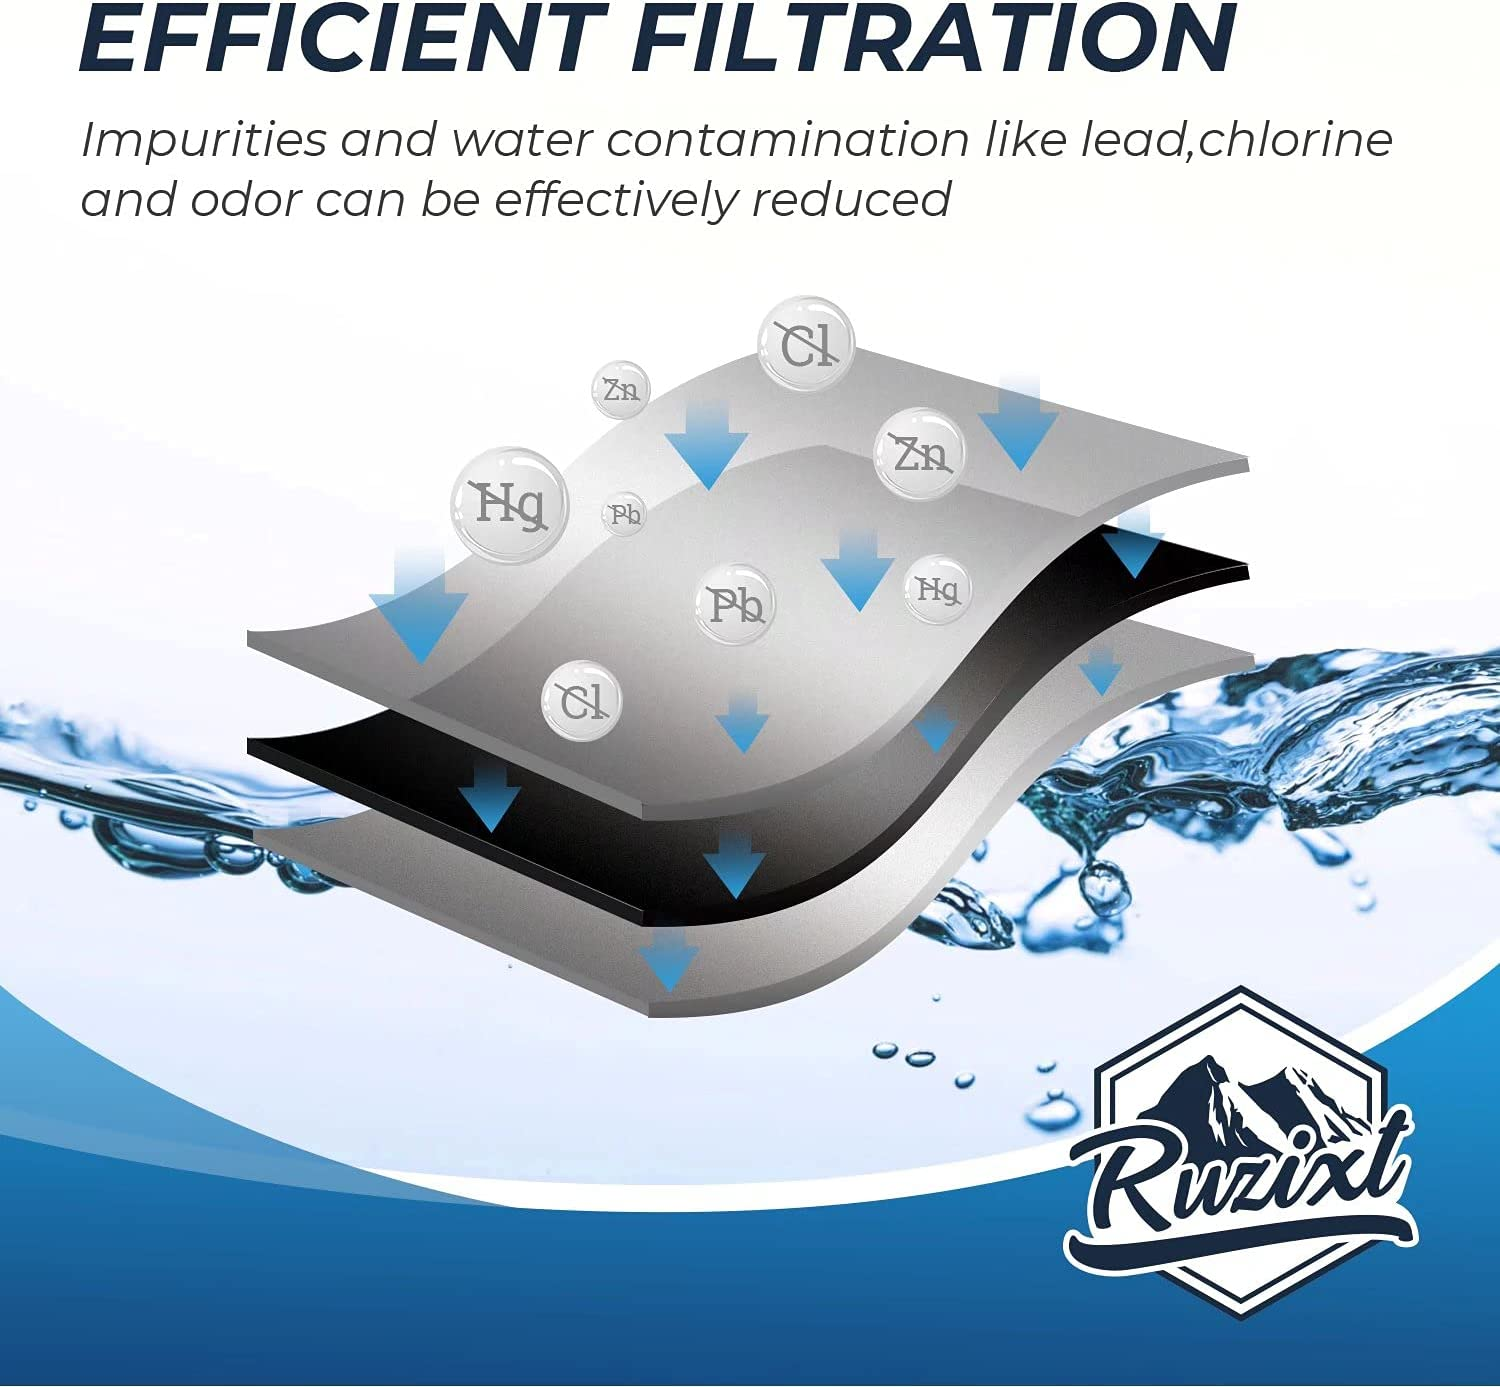 4396841 4396841 water Filter EDR3RXD1 Water Filter Cap Compatible with EDR3RXD1, Filter 3,P2RFWG2,46-9083 (3packs)